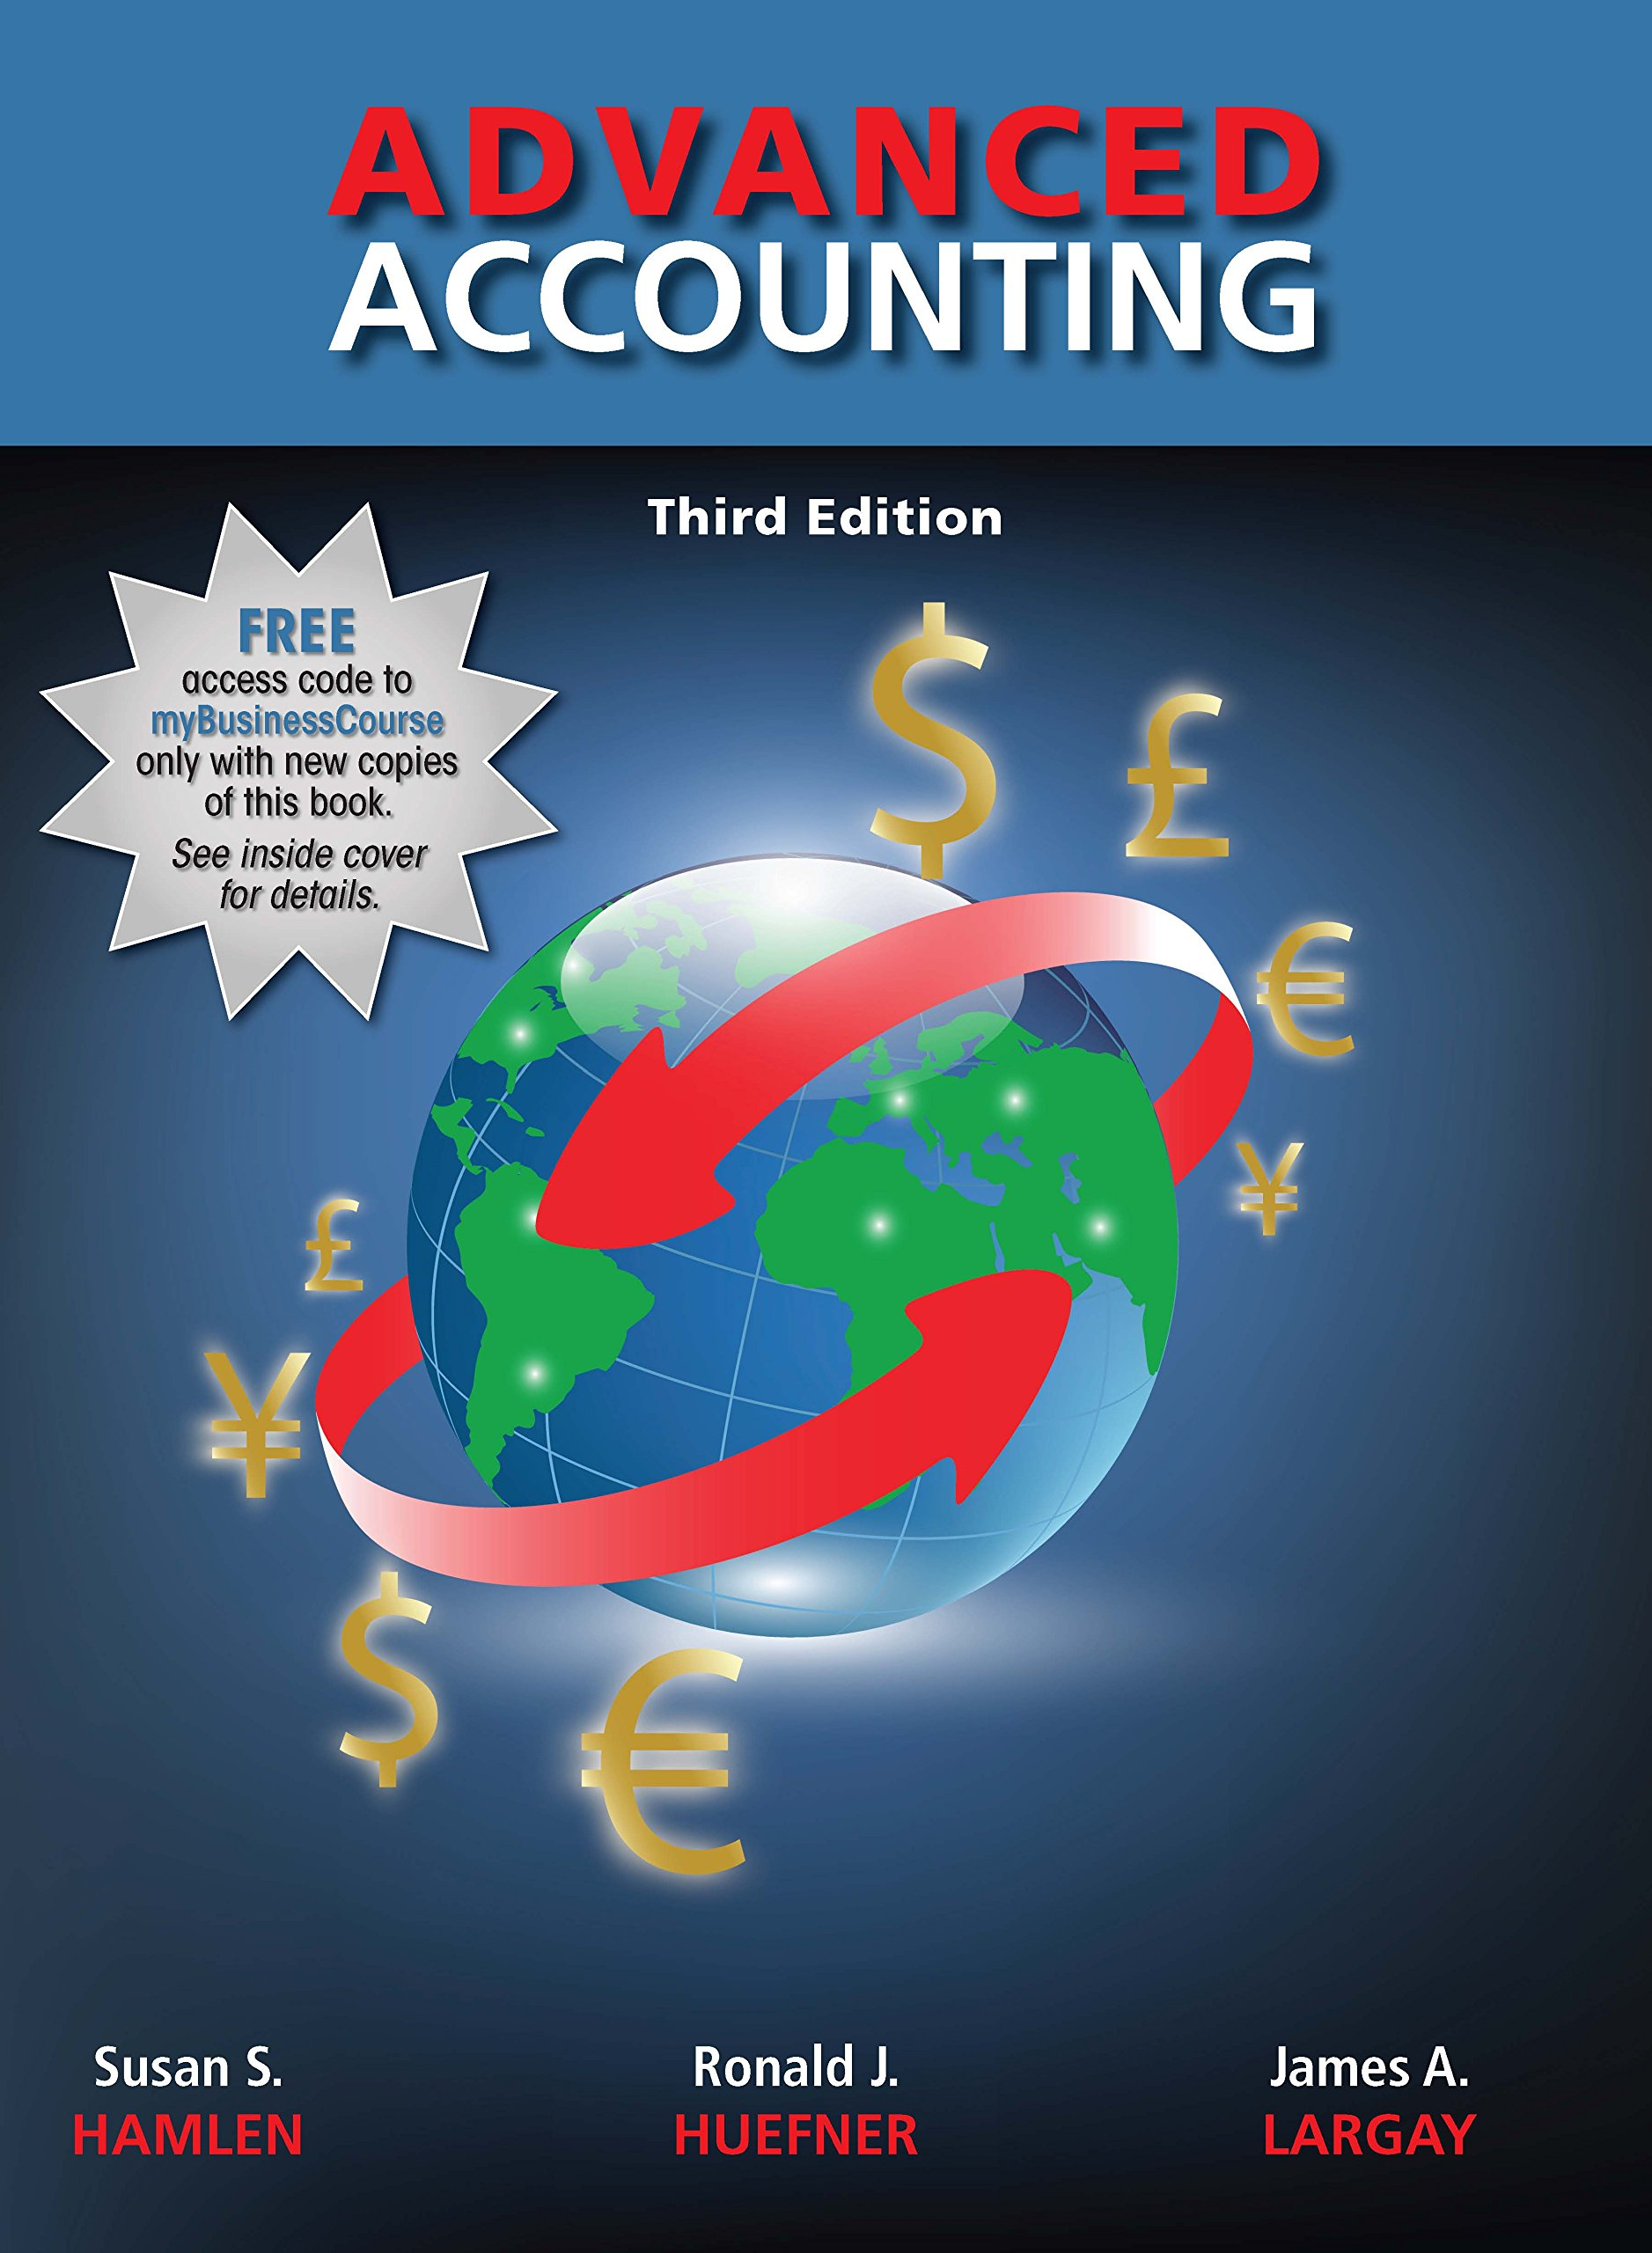 Advanced accounting 3rd edition susan s hamlen 9781618531513 advanced accounting 3rd edition susan s hamlen 9781618531513 amazon books fandeluxe Images